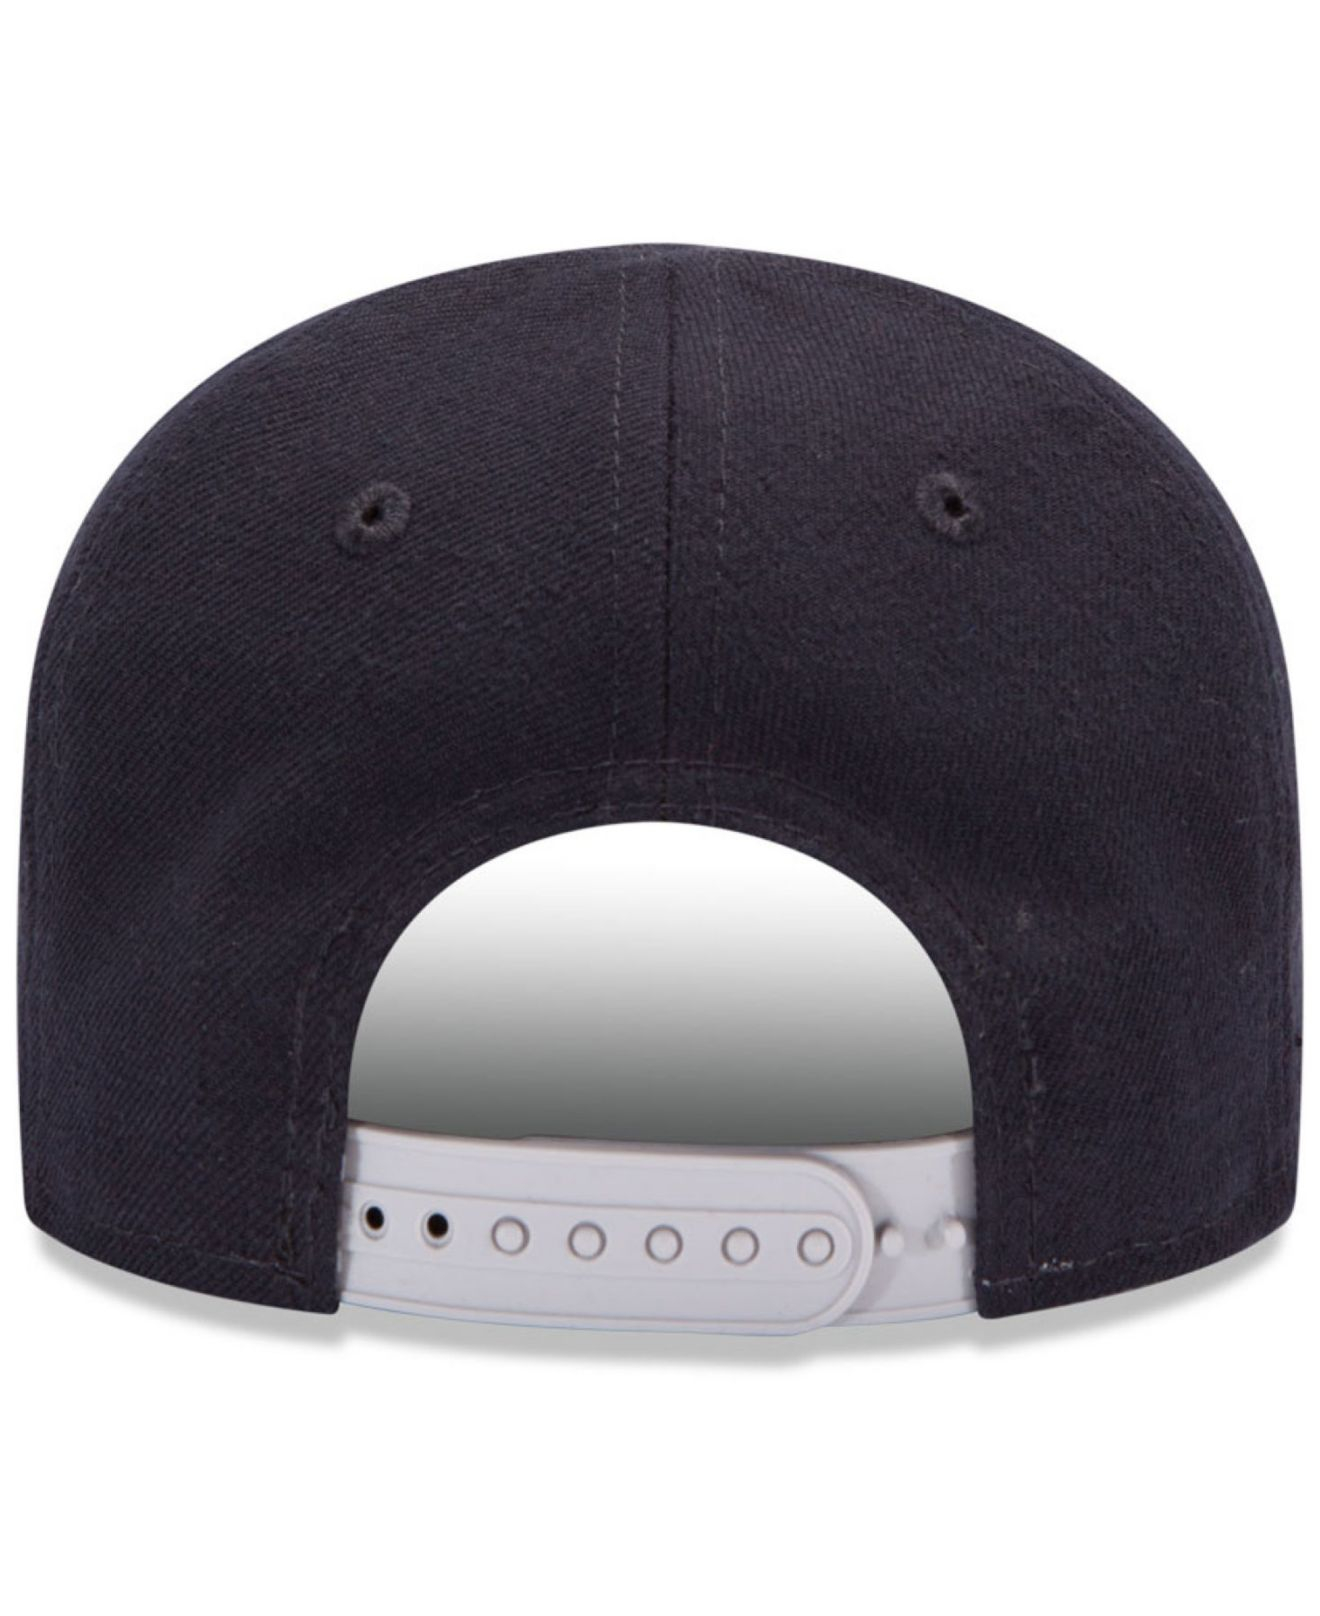 4b47e414c9d 59fiftybaseballjapanmlbnew york yankees  lyst ktz babies new york yankees  9fifty snapback cap in blue